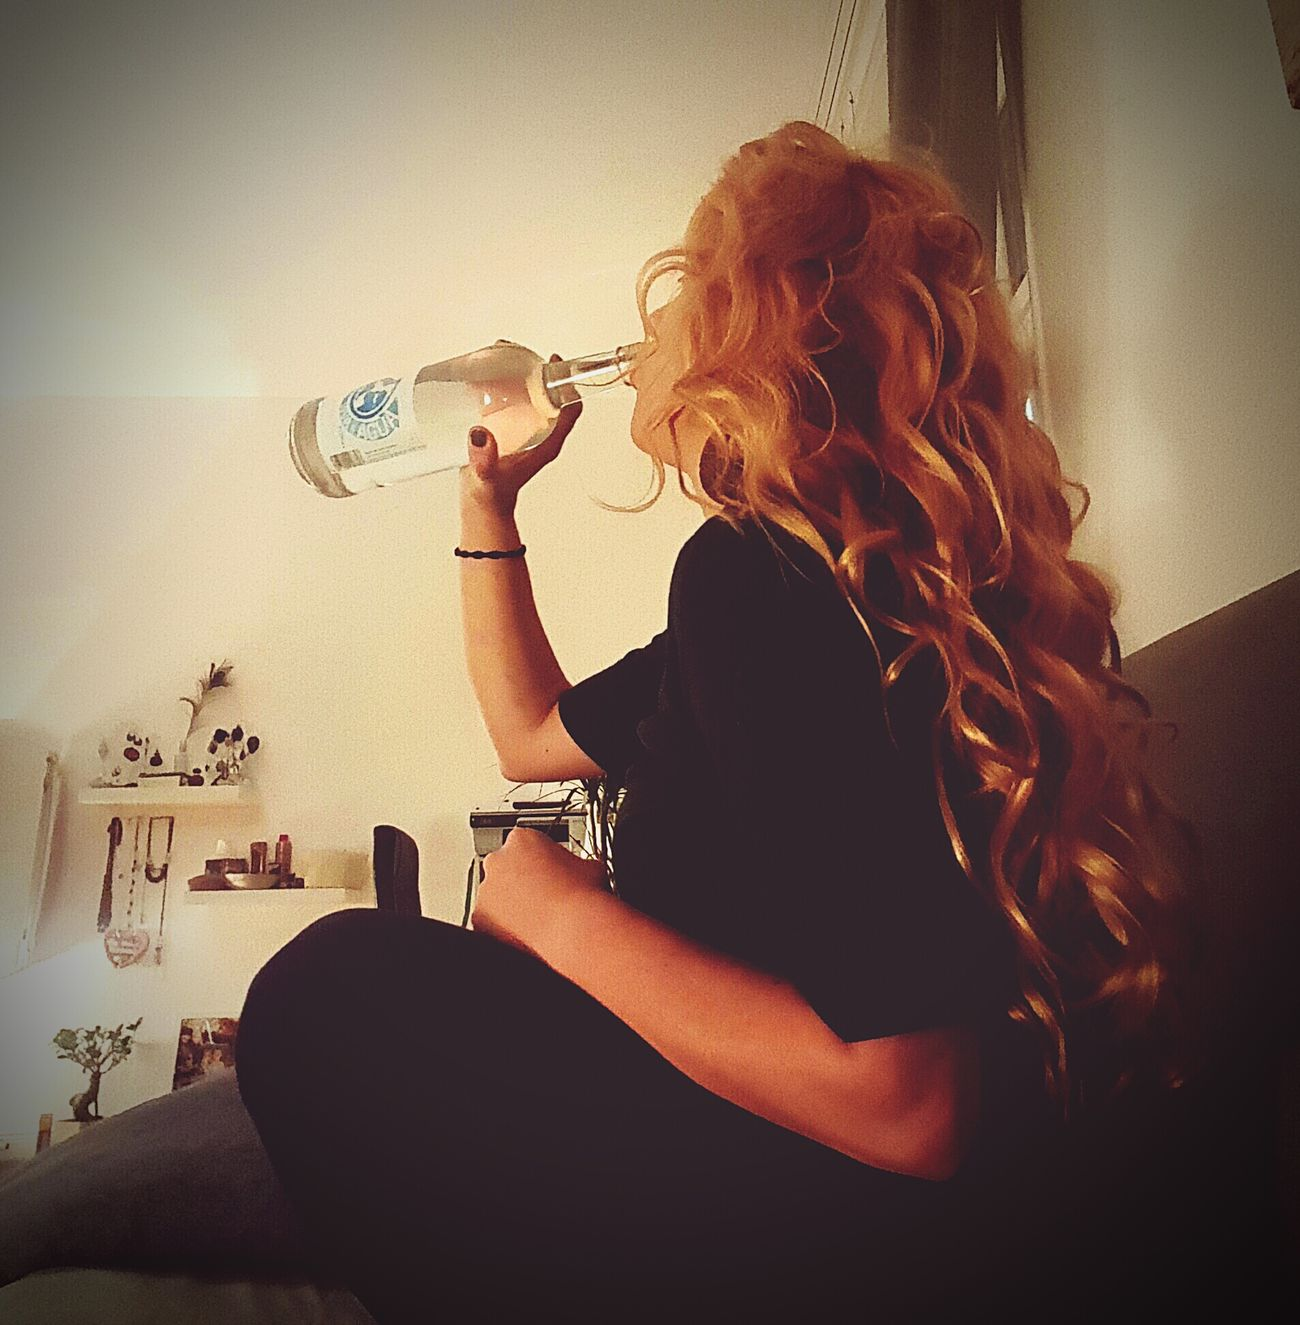 Hair Hairstyle Blonde Longhair Strawberryblond Redhead That's Me Relaxing Amazing Woman Locks Locken